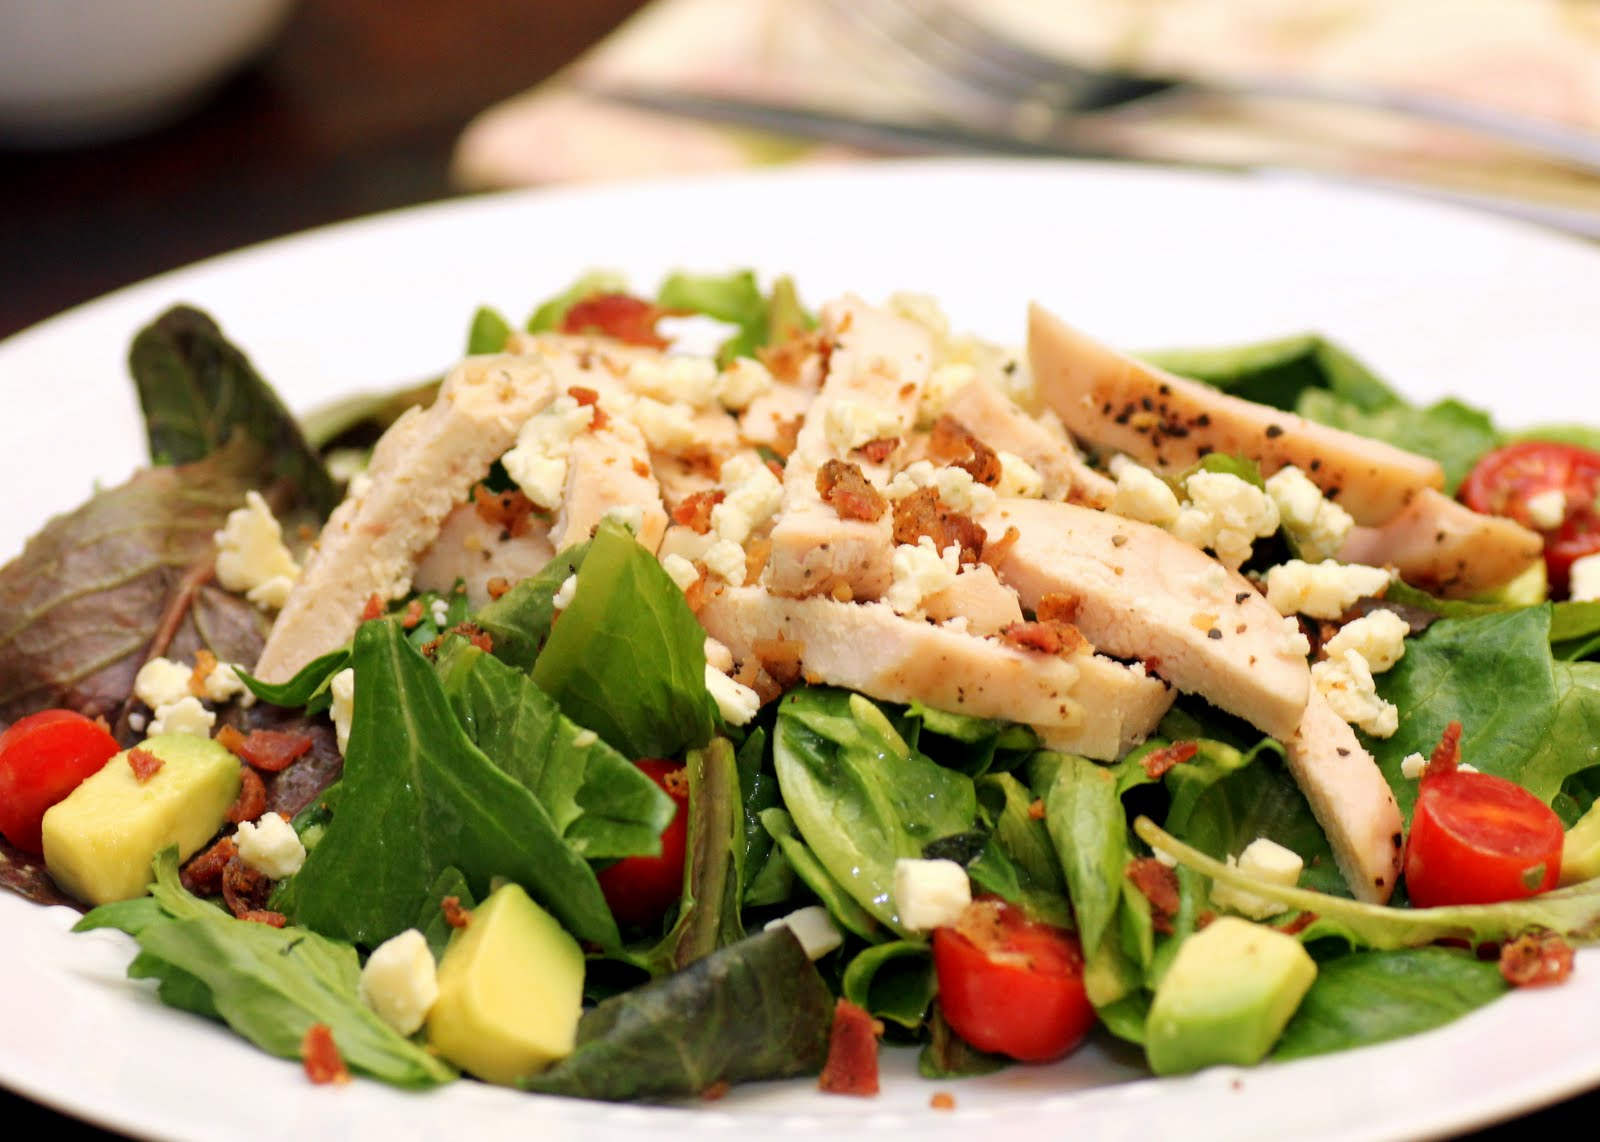 cobb salad cobb salad with grains easy cobb salad chicken cobb salad ...